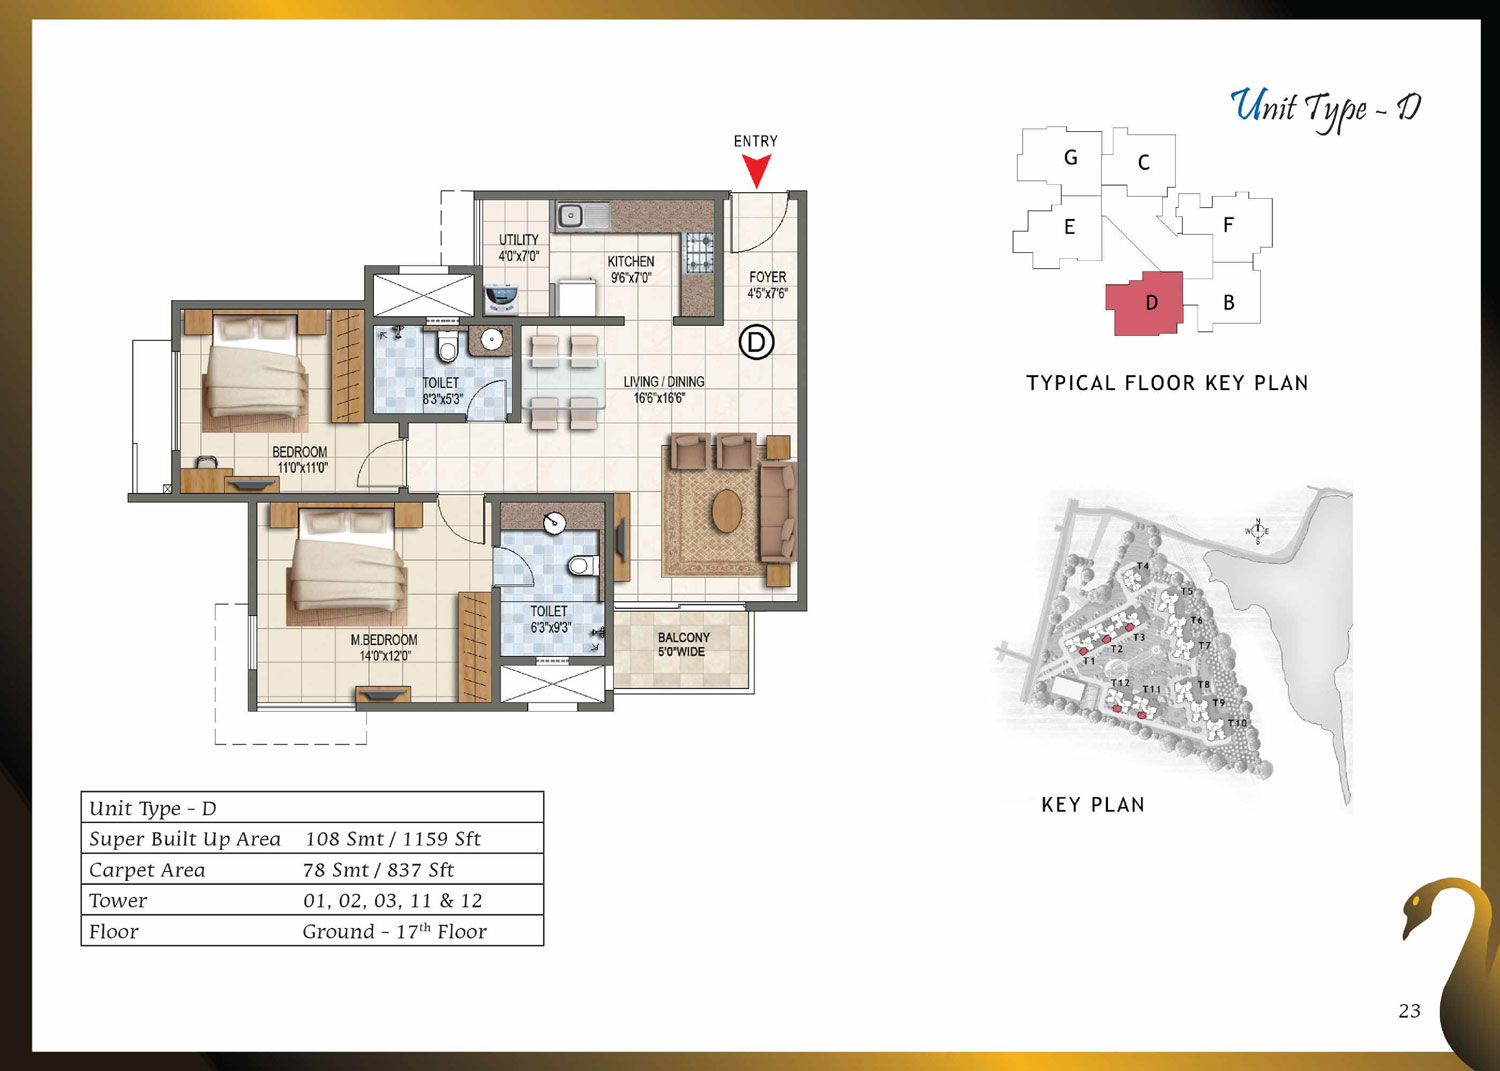 Type D - 1159 Sq Ft